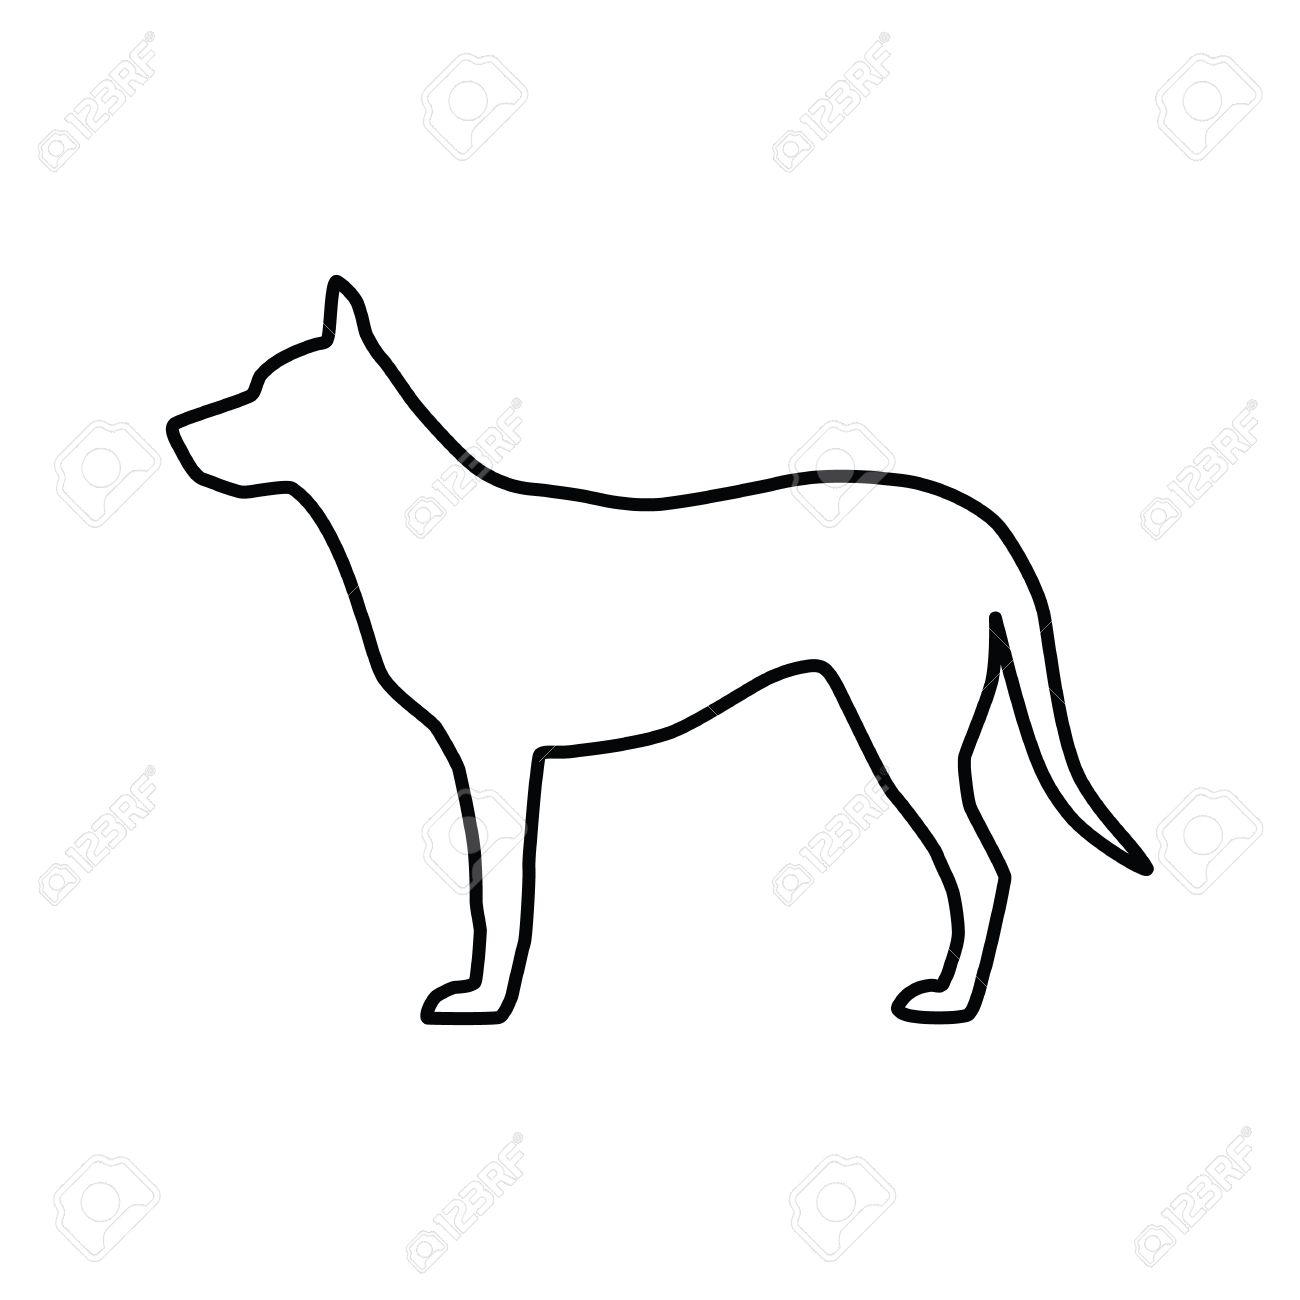 Vector Image Of An Outline Dog Silhouette On White Background ...